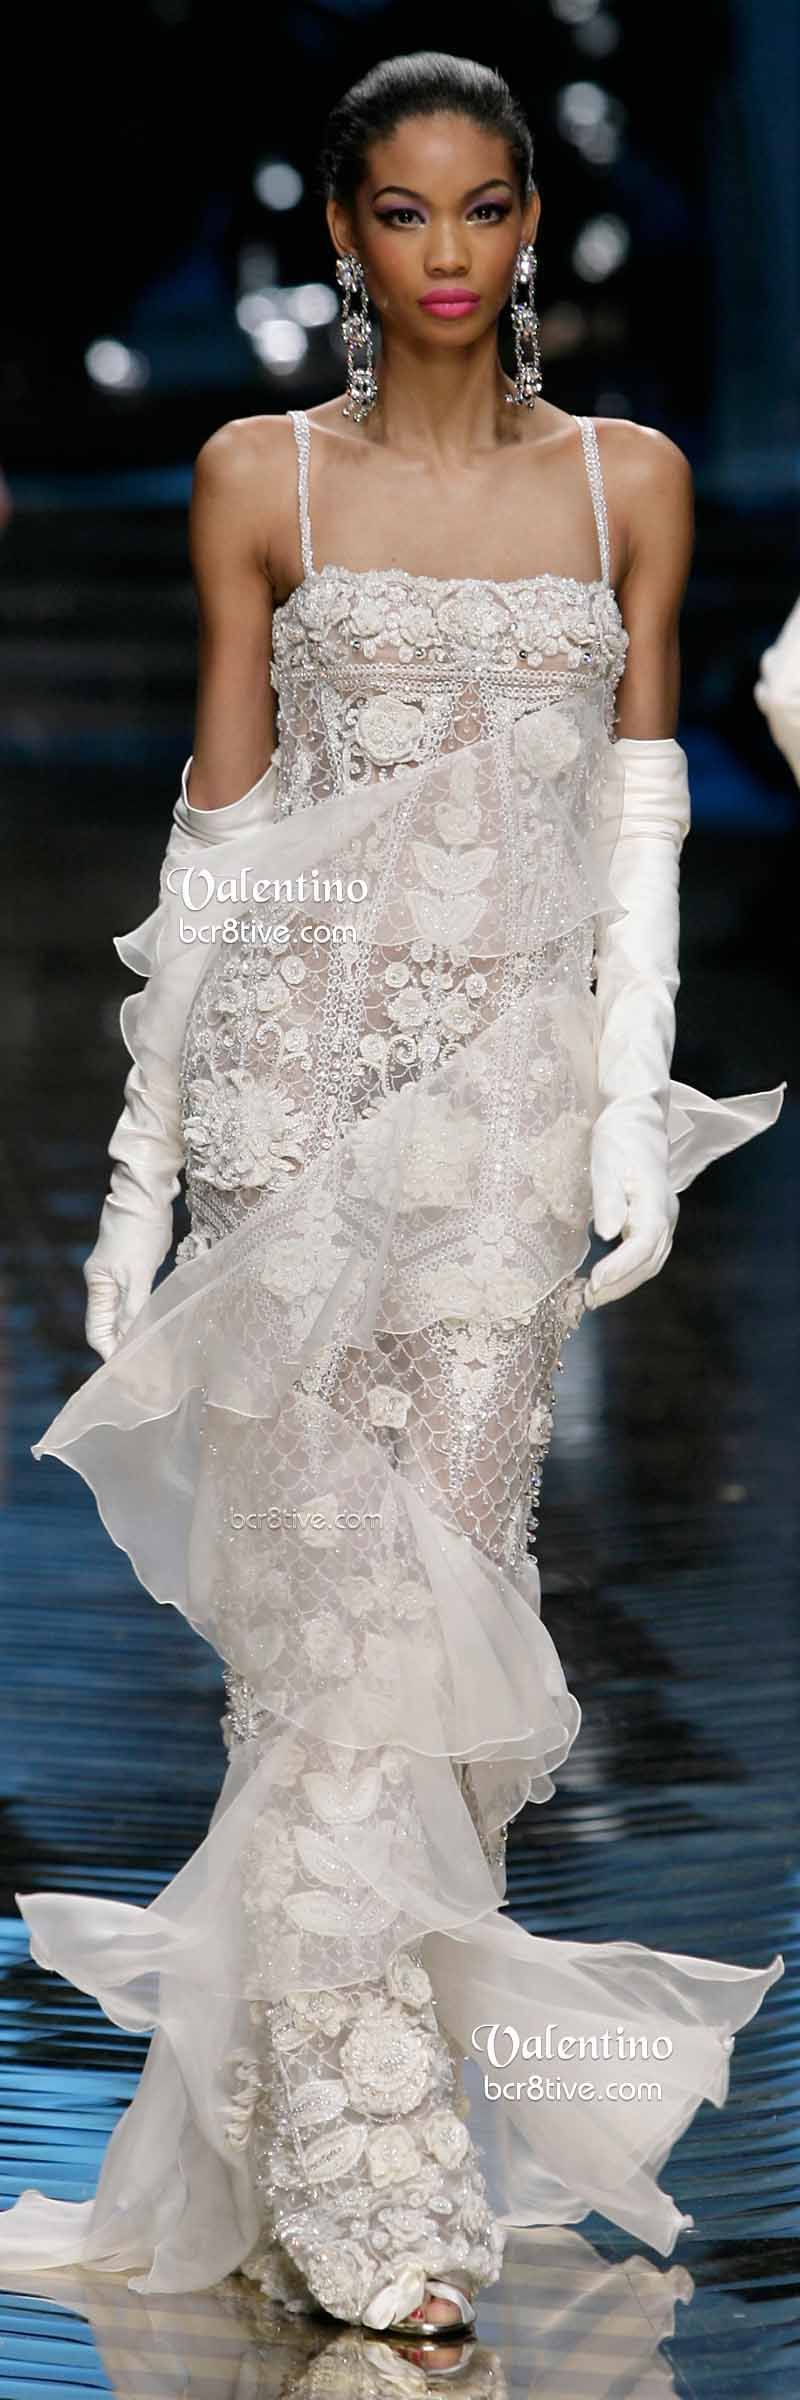 Farewell Valentino | Pearls and Lace | Pinterest | Lace evening ...